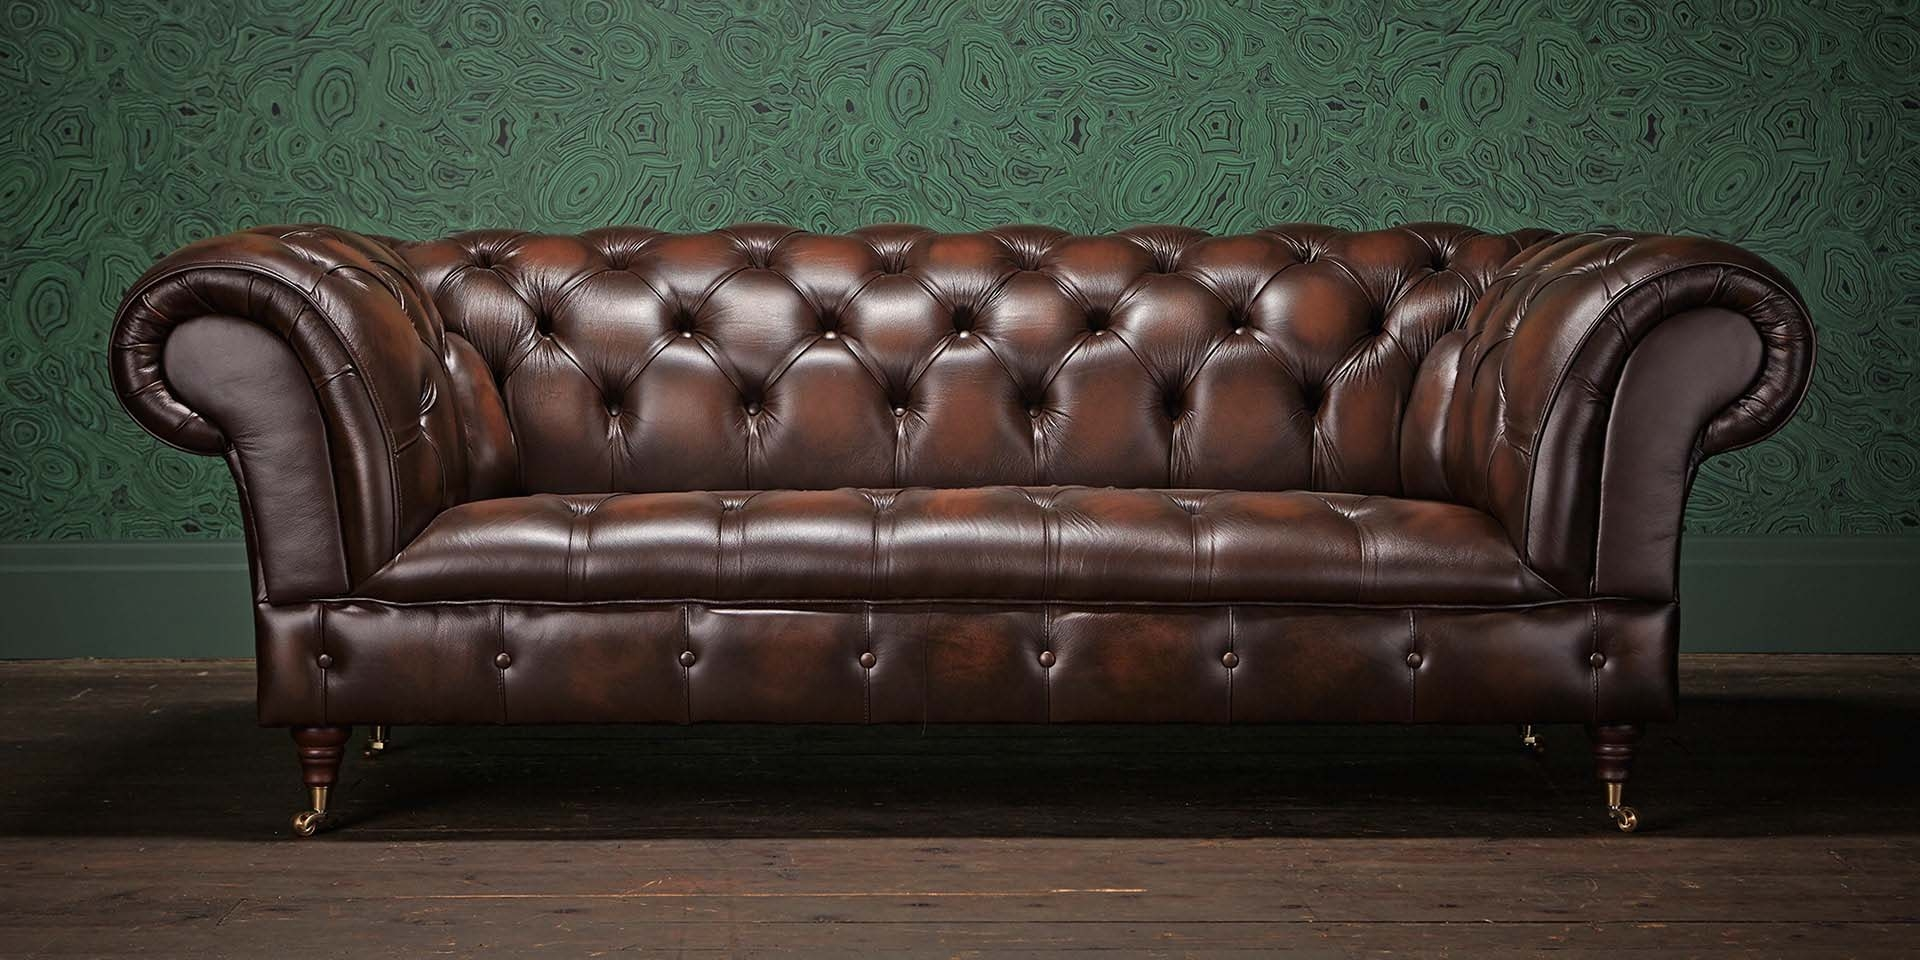 Chesterfields Of England The Original Chesterfield Company Throughout Chesterfield Sofas (Image 9 of 15)